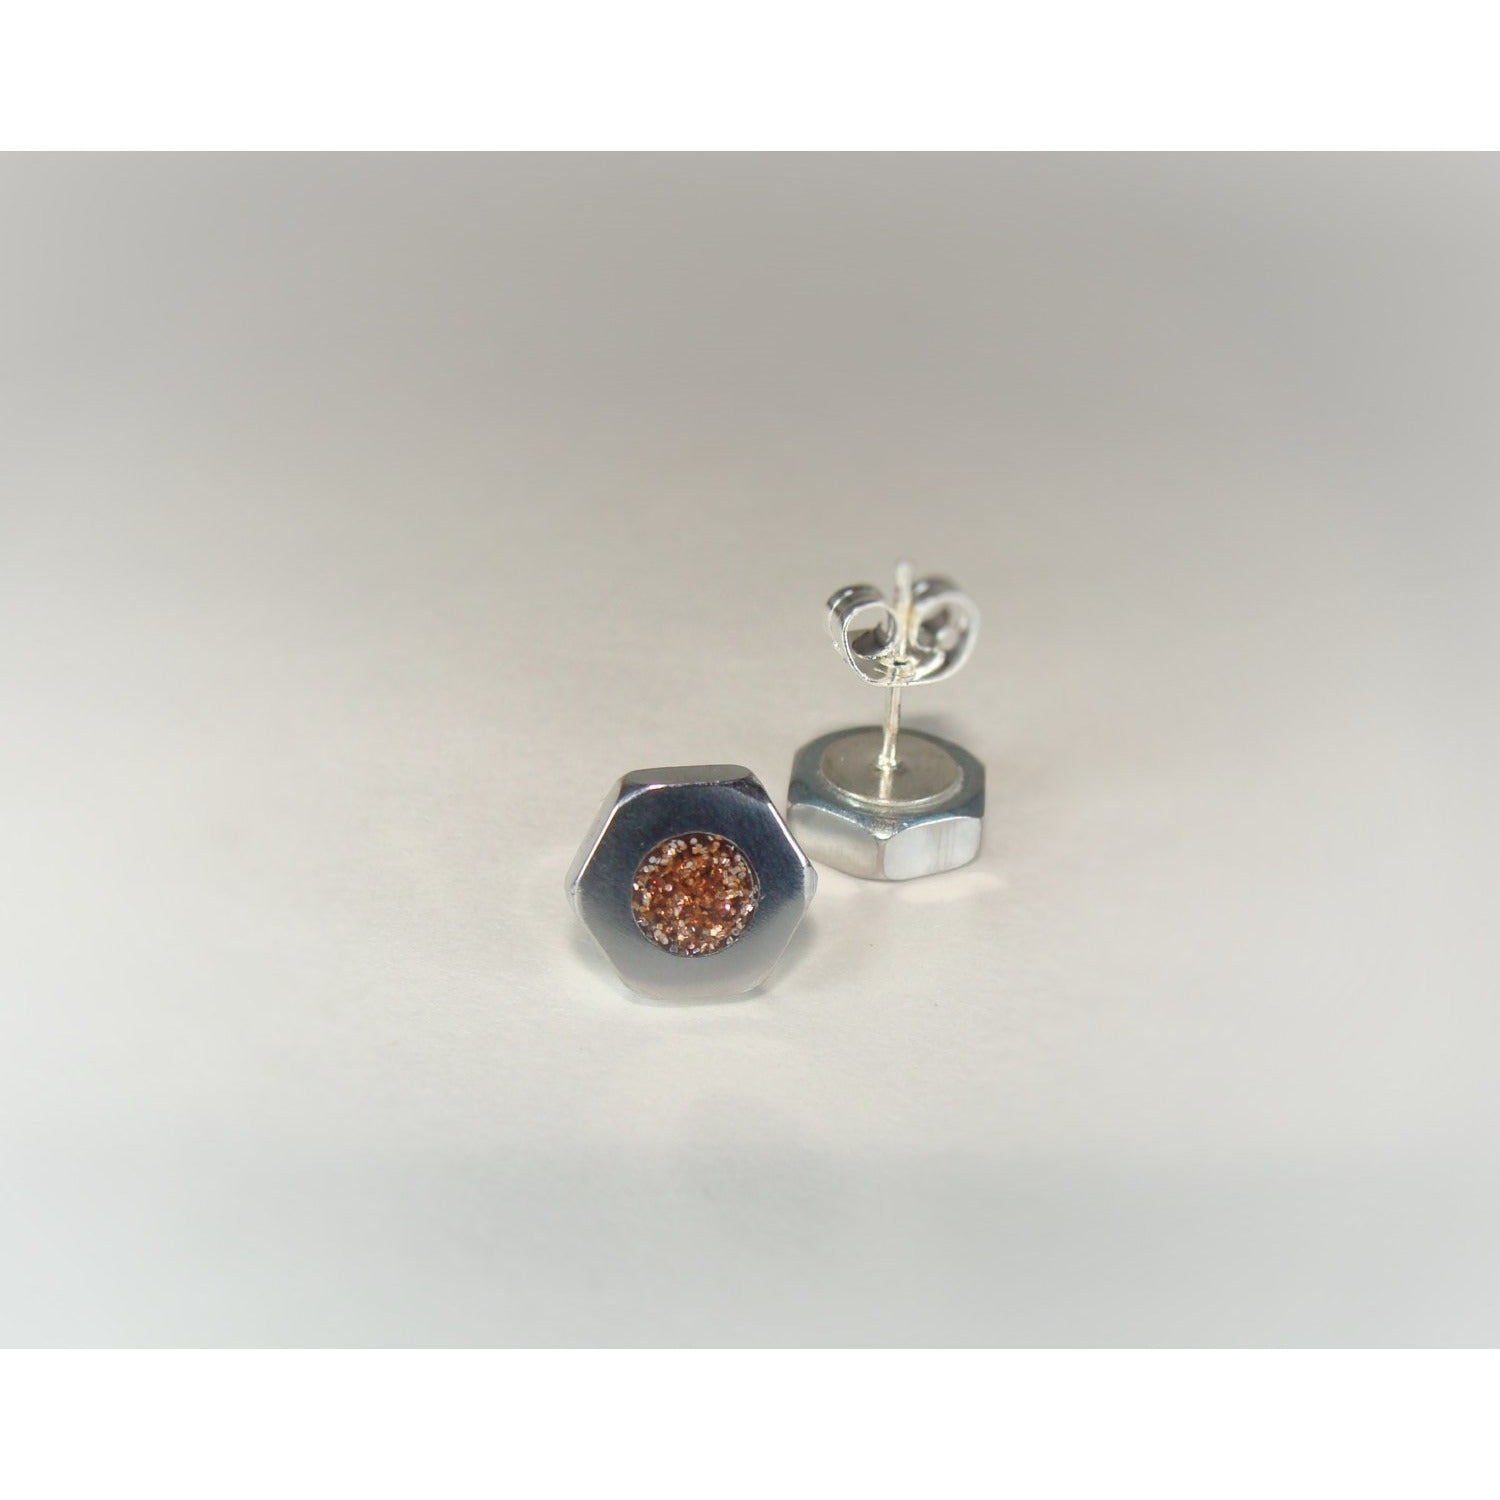 Copper Metallic Hex Nut Stud Earrings - Acrylic Inlay - Art and Soule